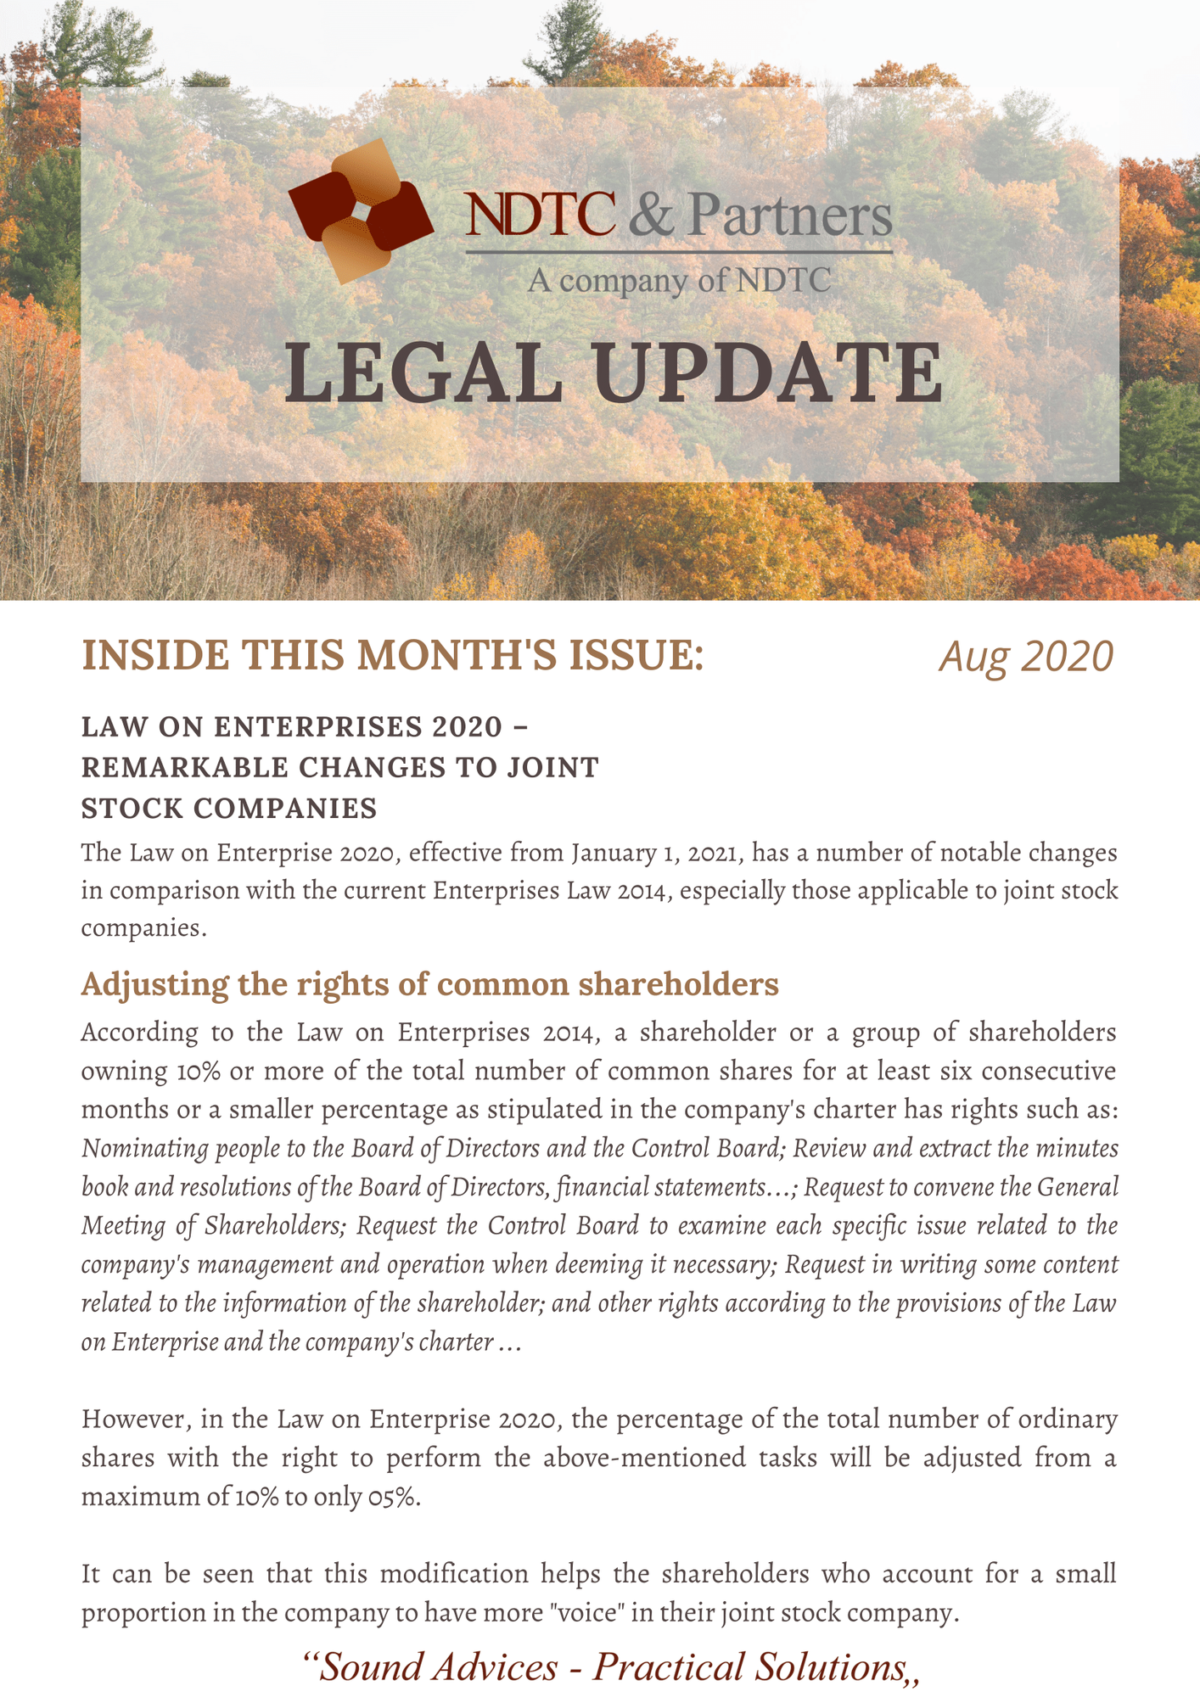 Legal Update Aug 2020